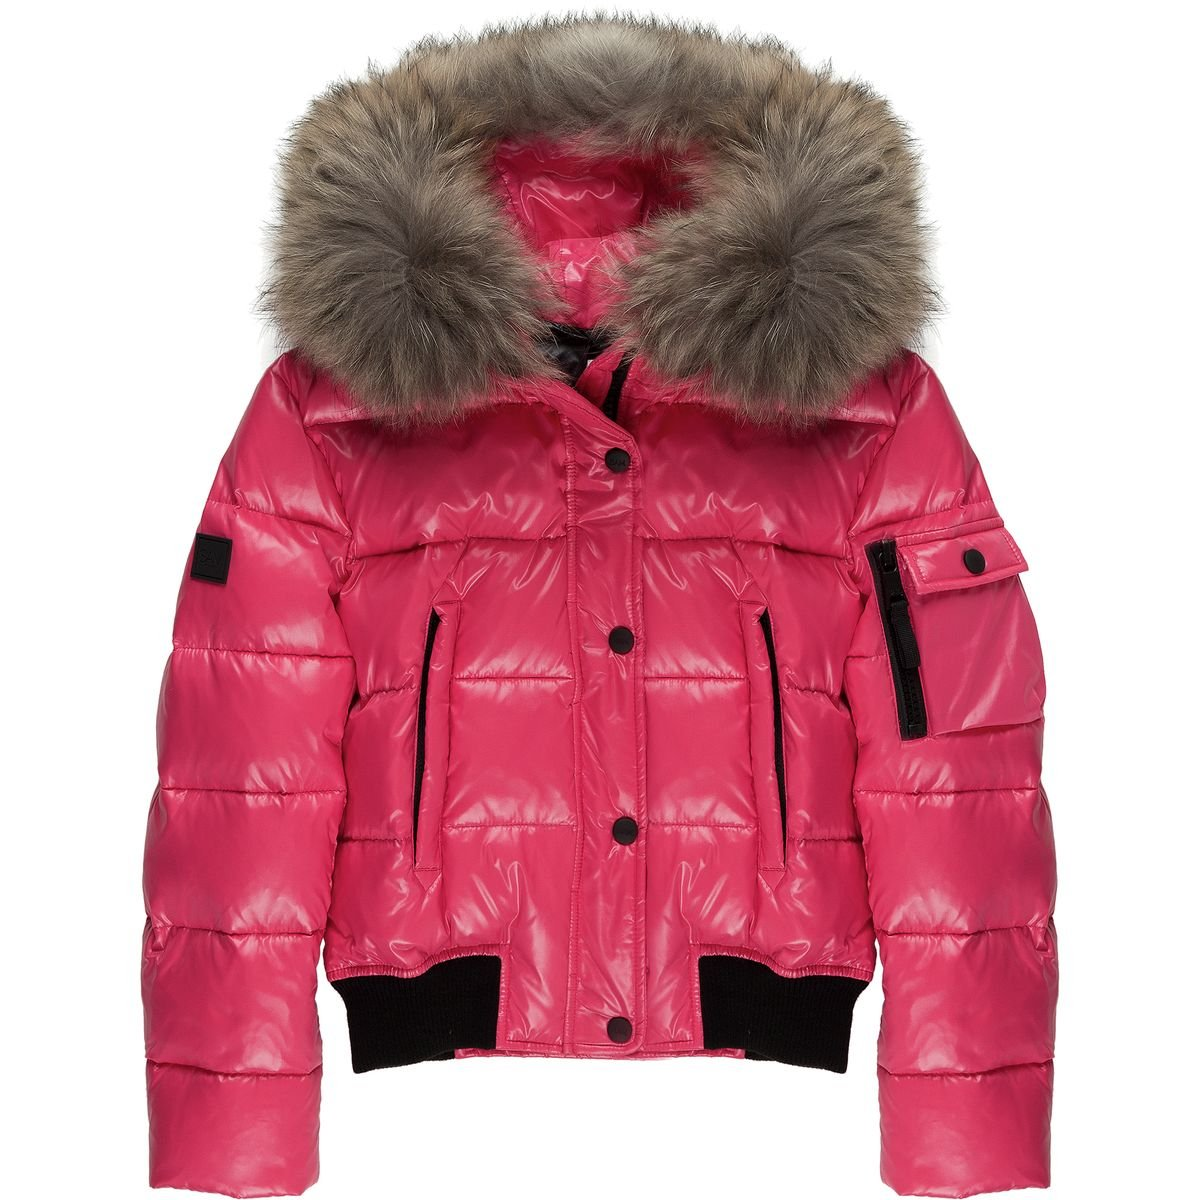 SAM Skyler Down Jacket - Girls' Geranium, 12